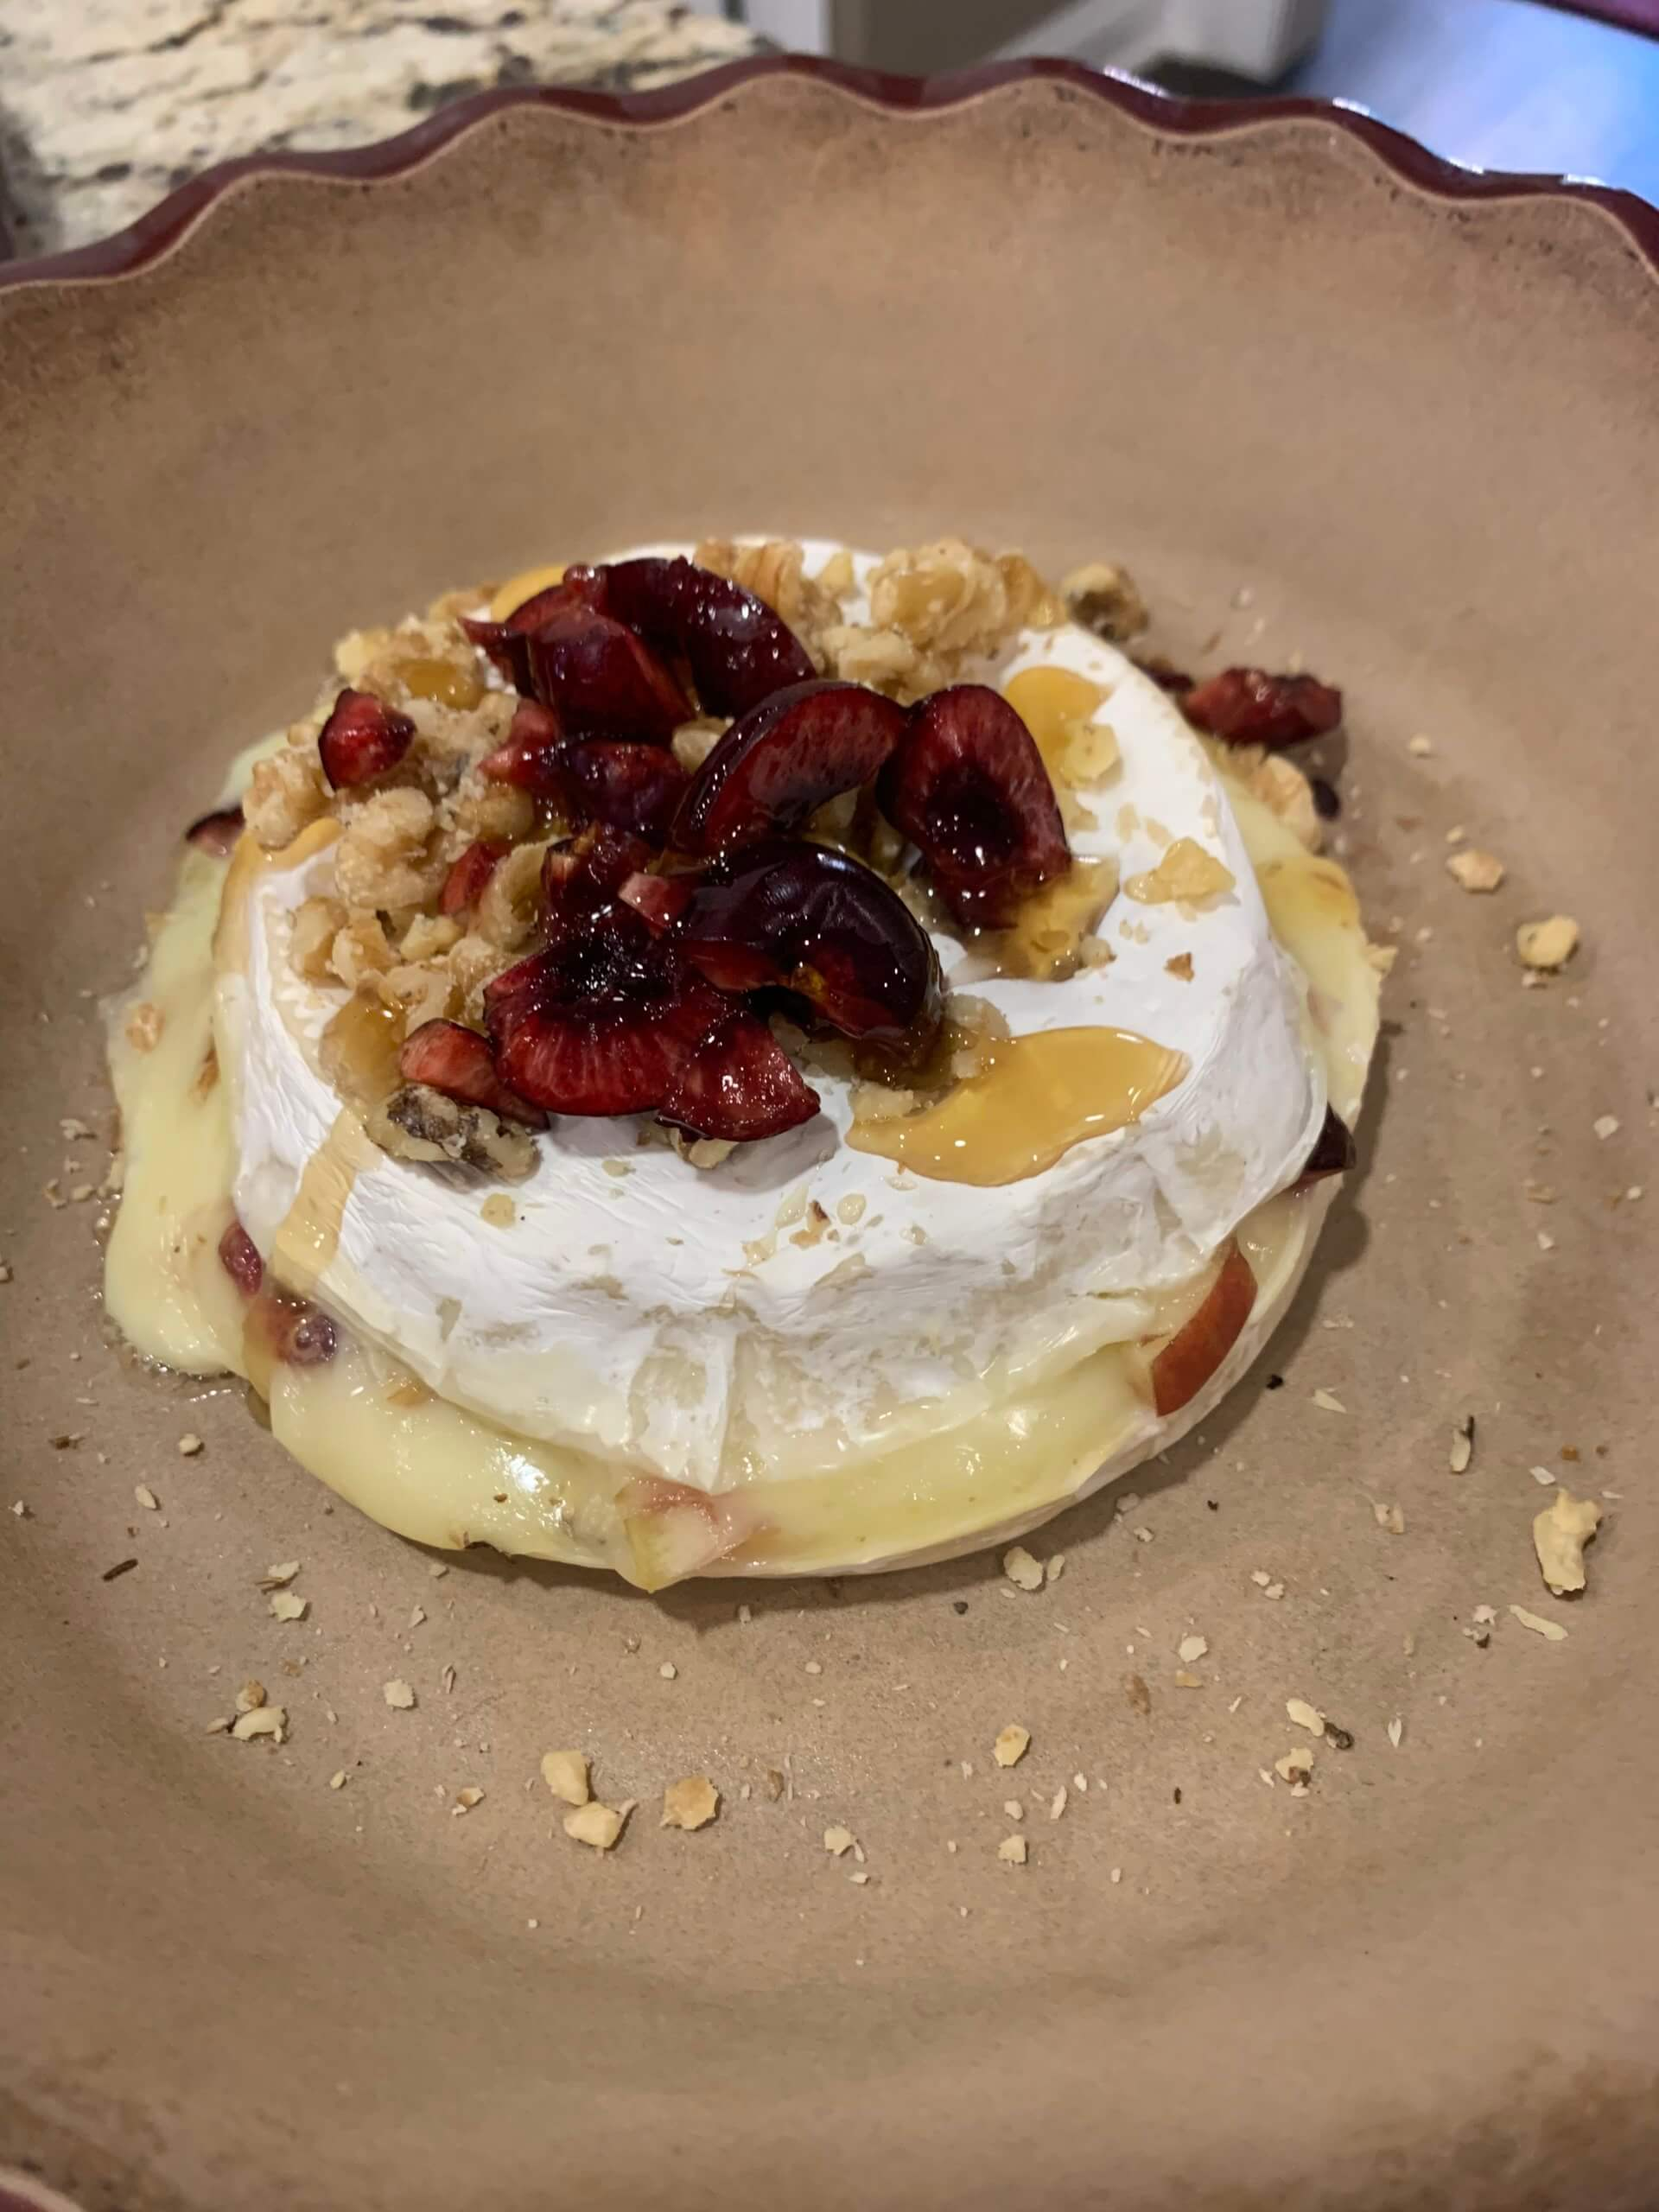 Baked Brie with Cherries and Apples